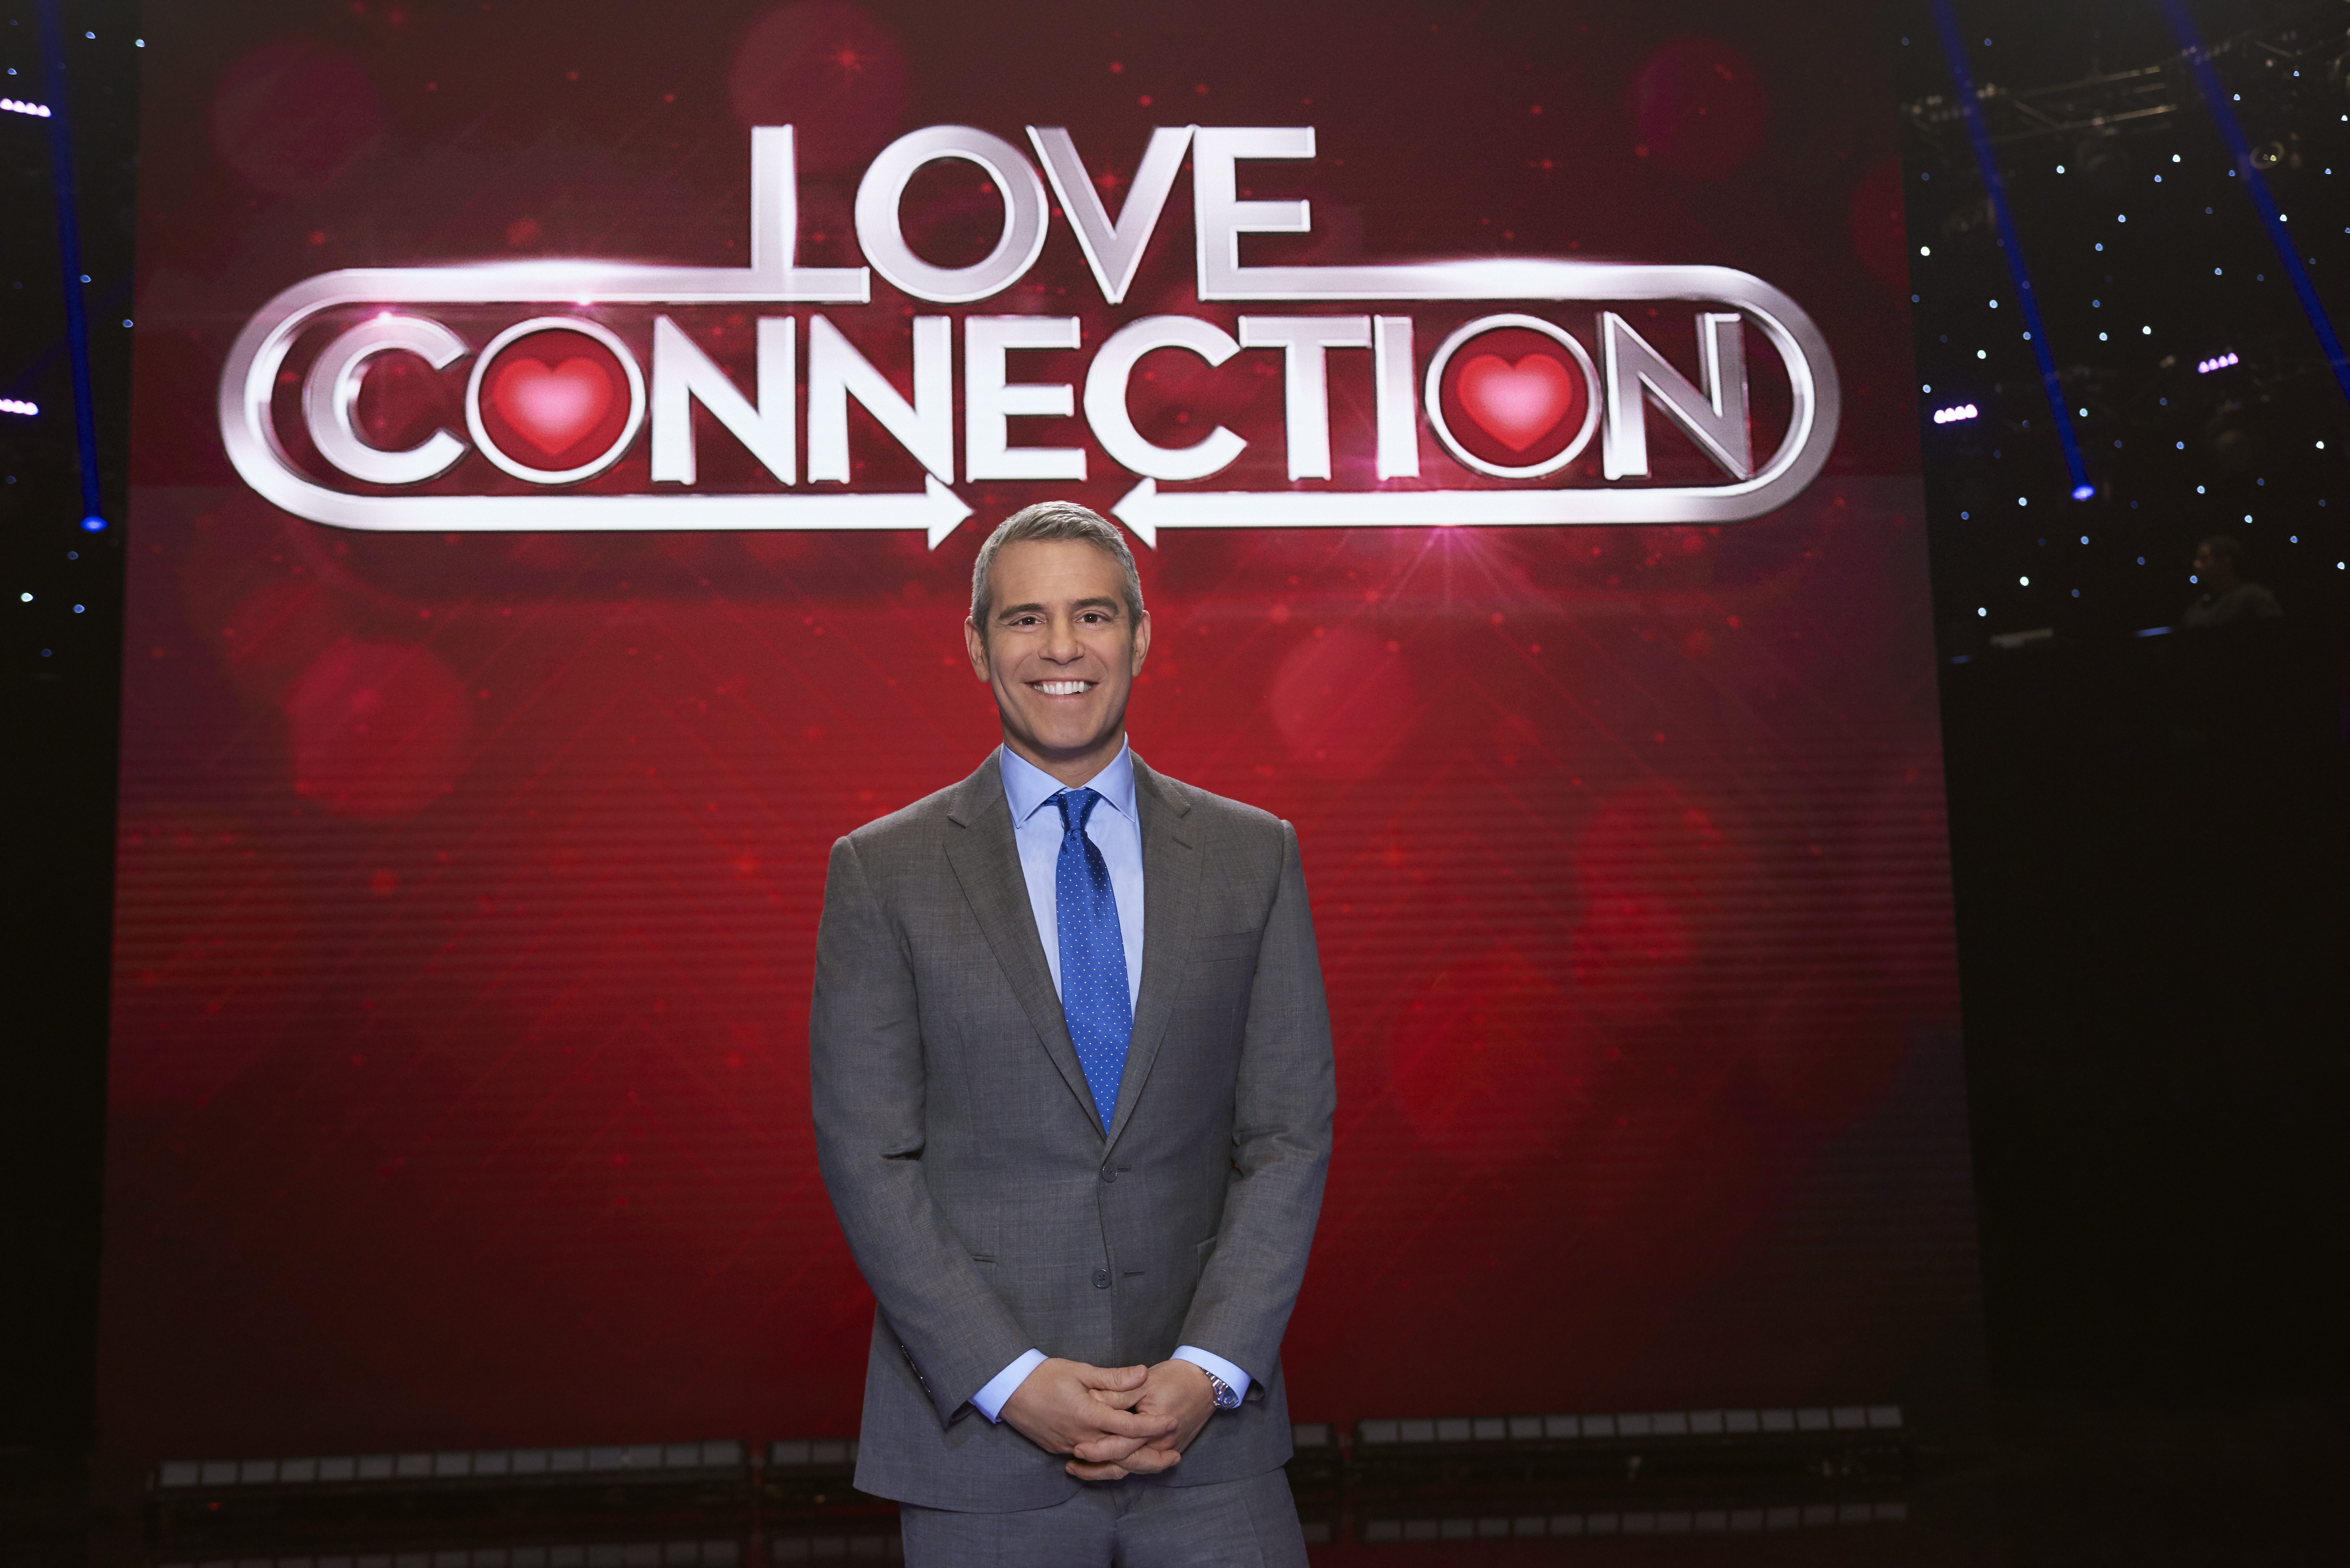 new dating game show on fox